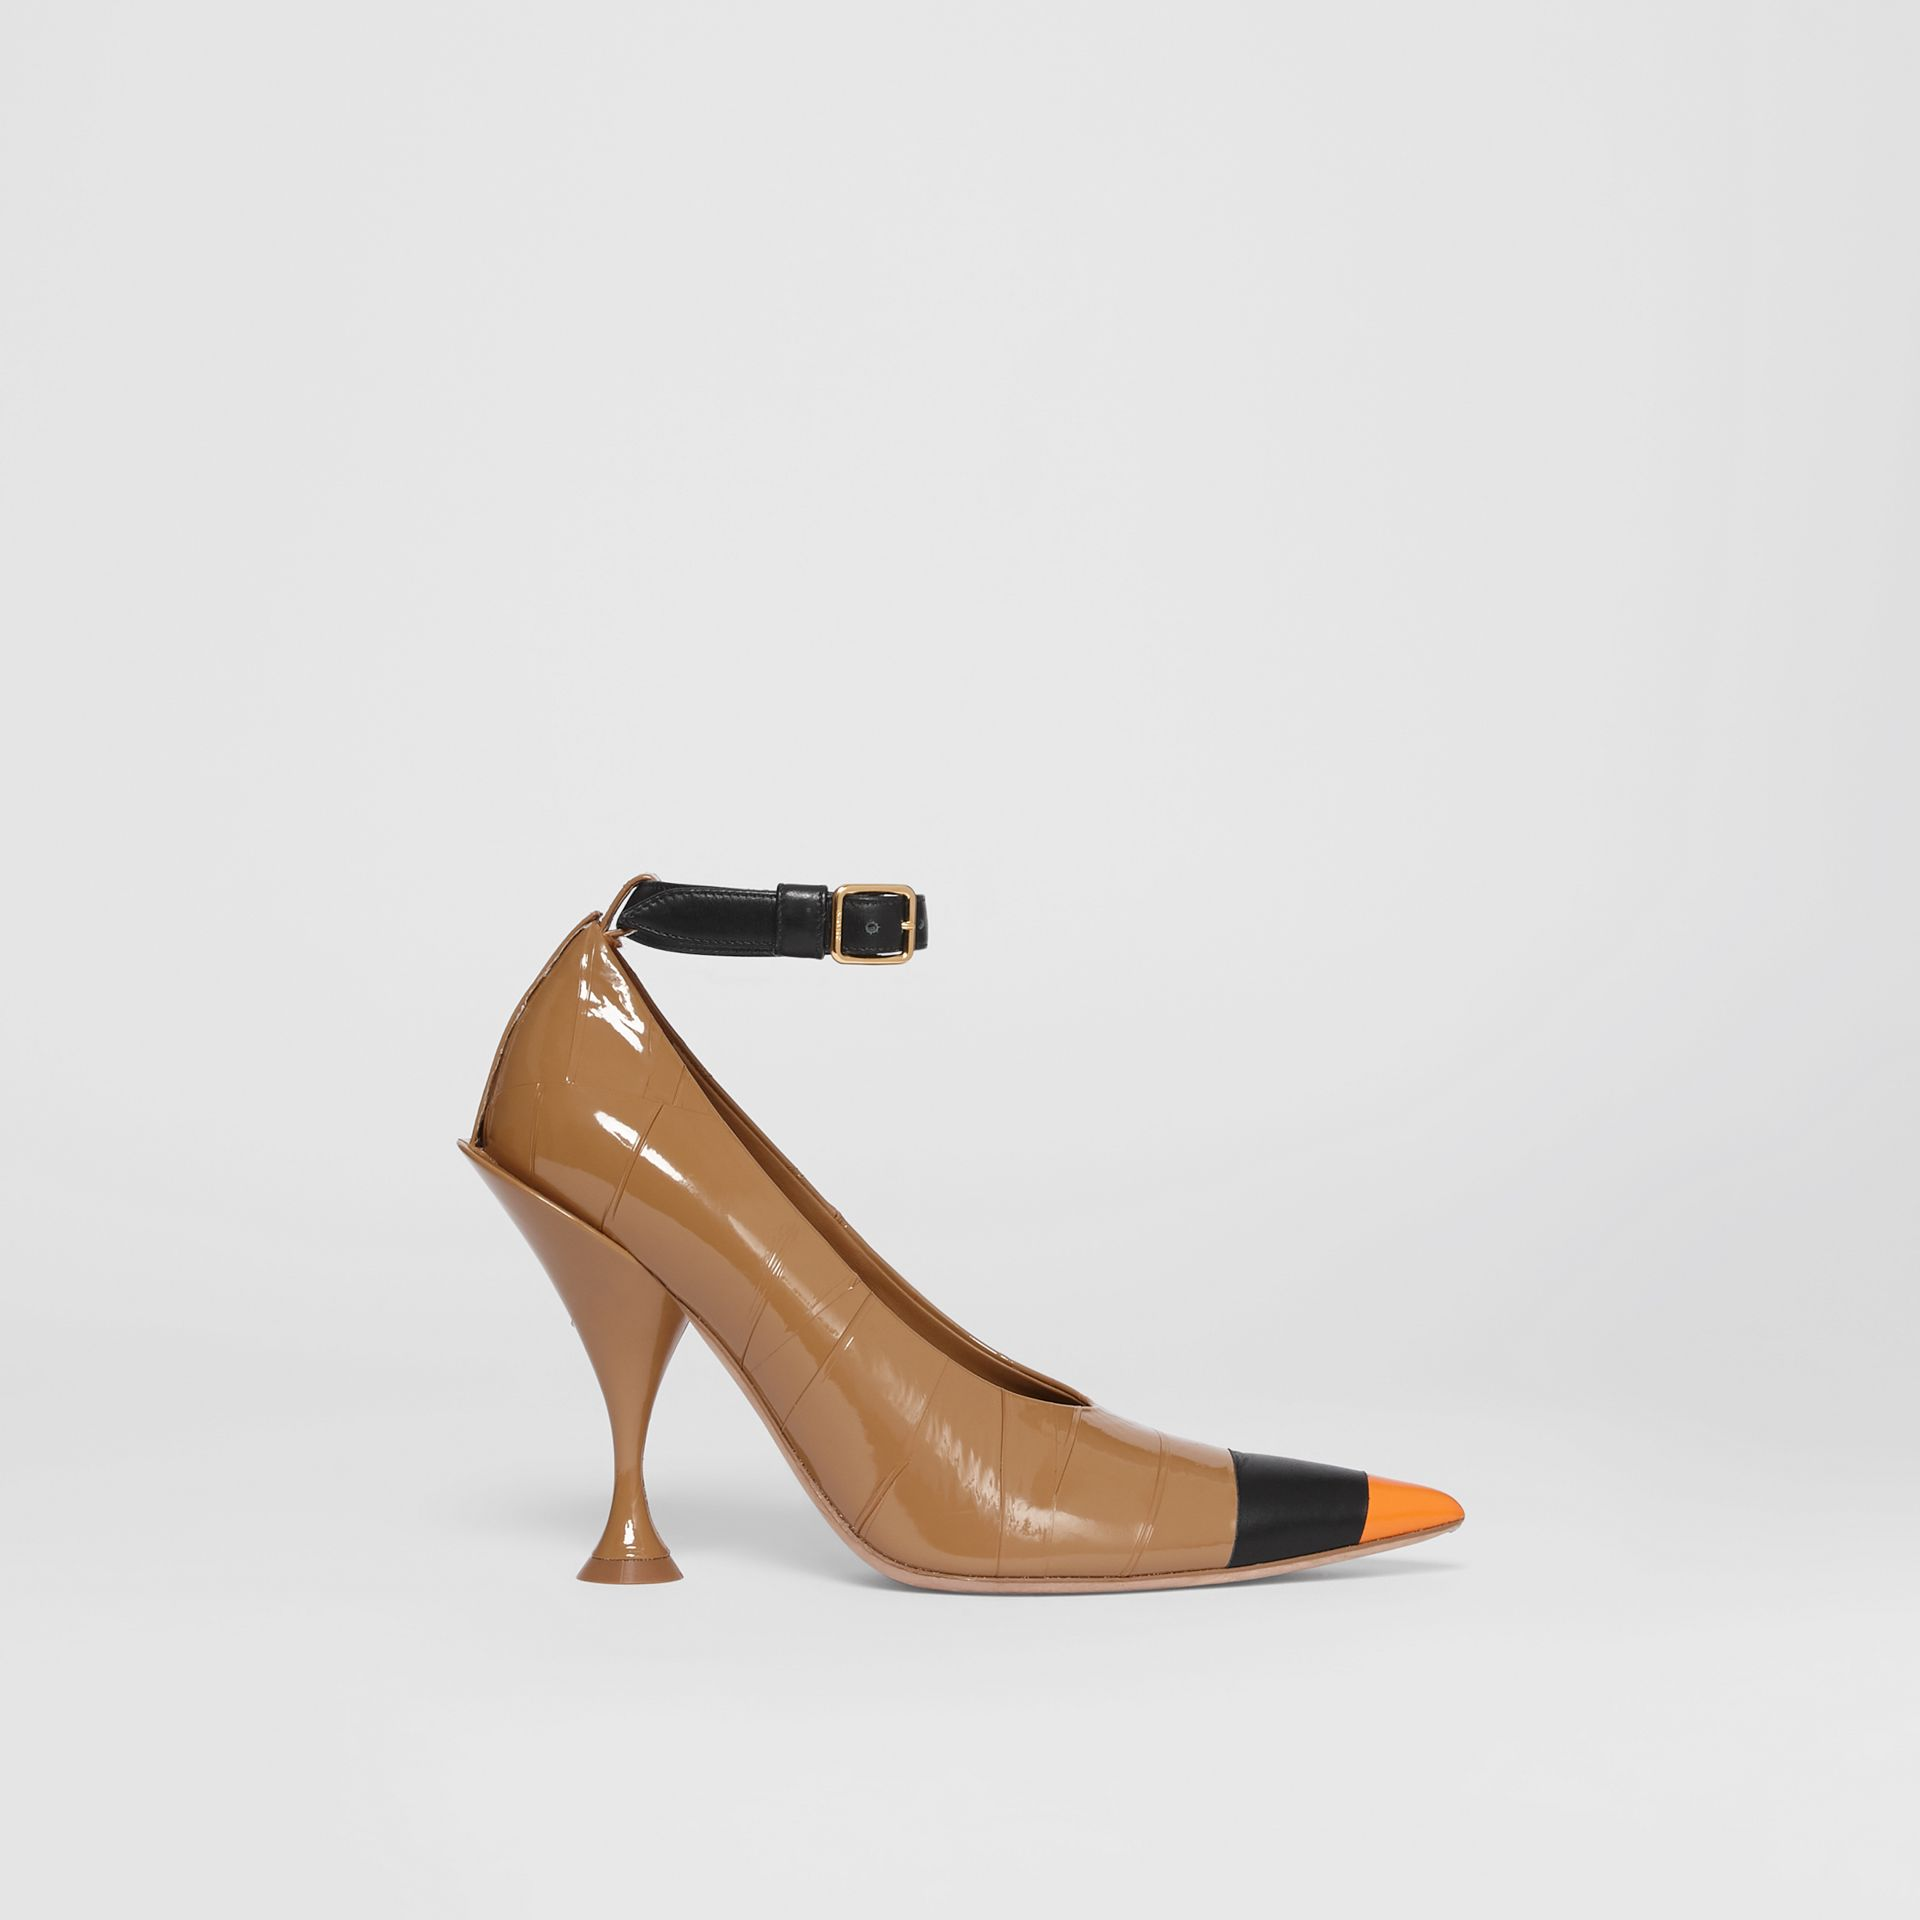 Tape Detail Leather Point-toe Pumps in Brown / Black - Women | Burberry - gallery image 5